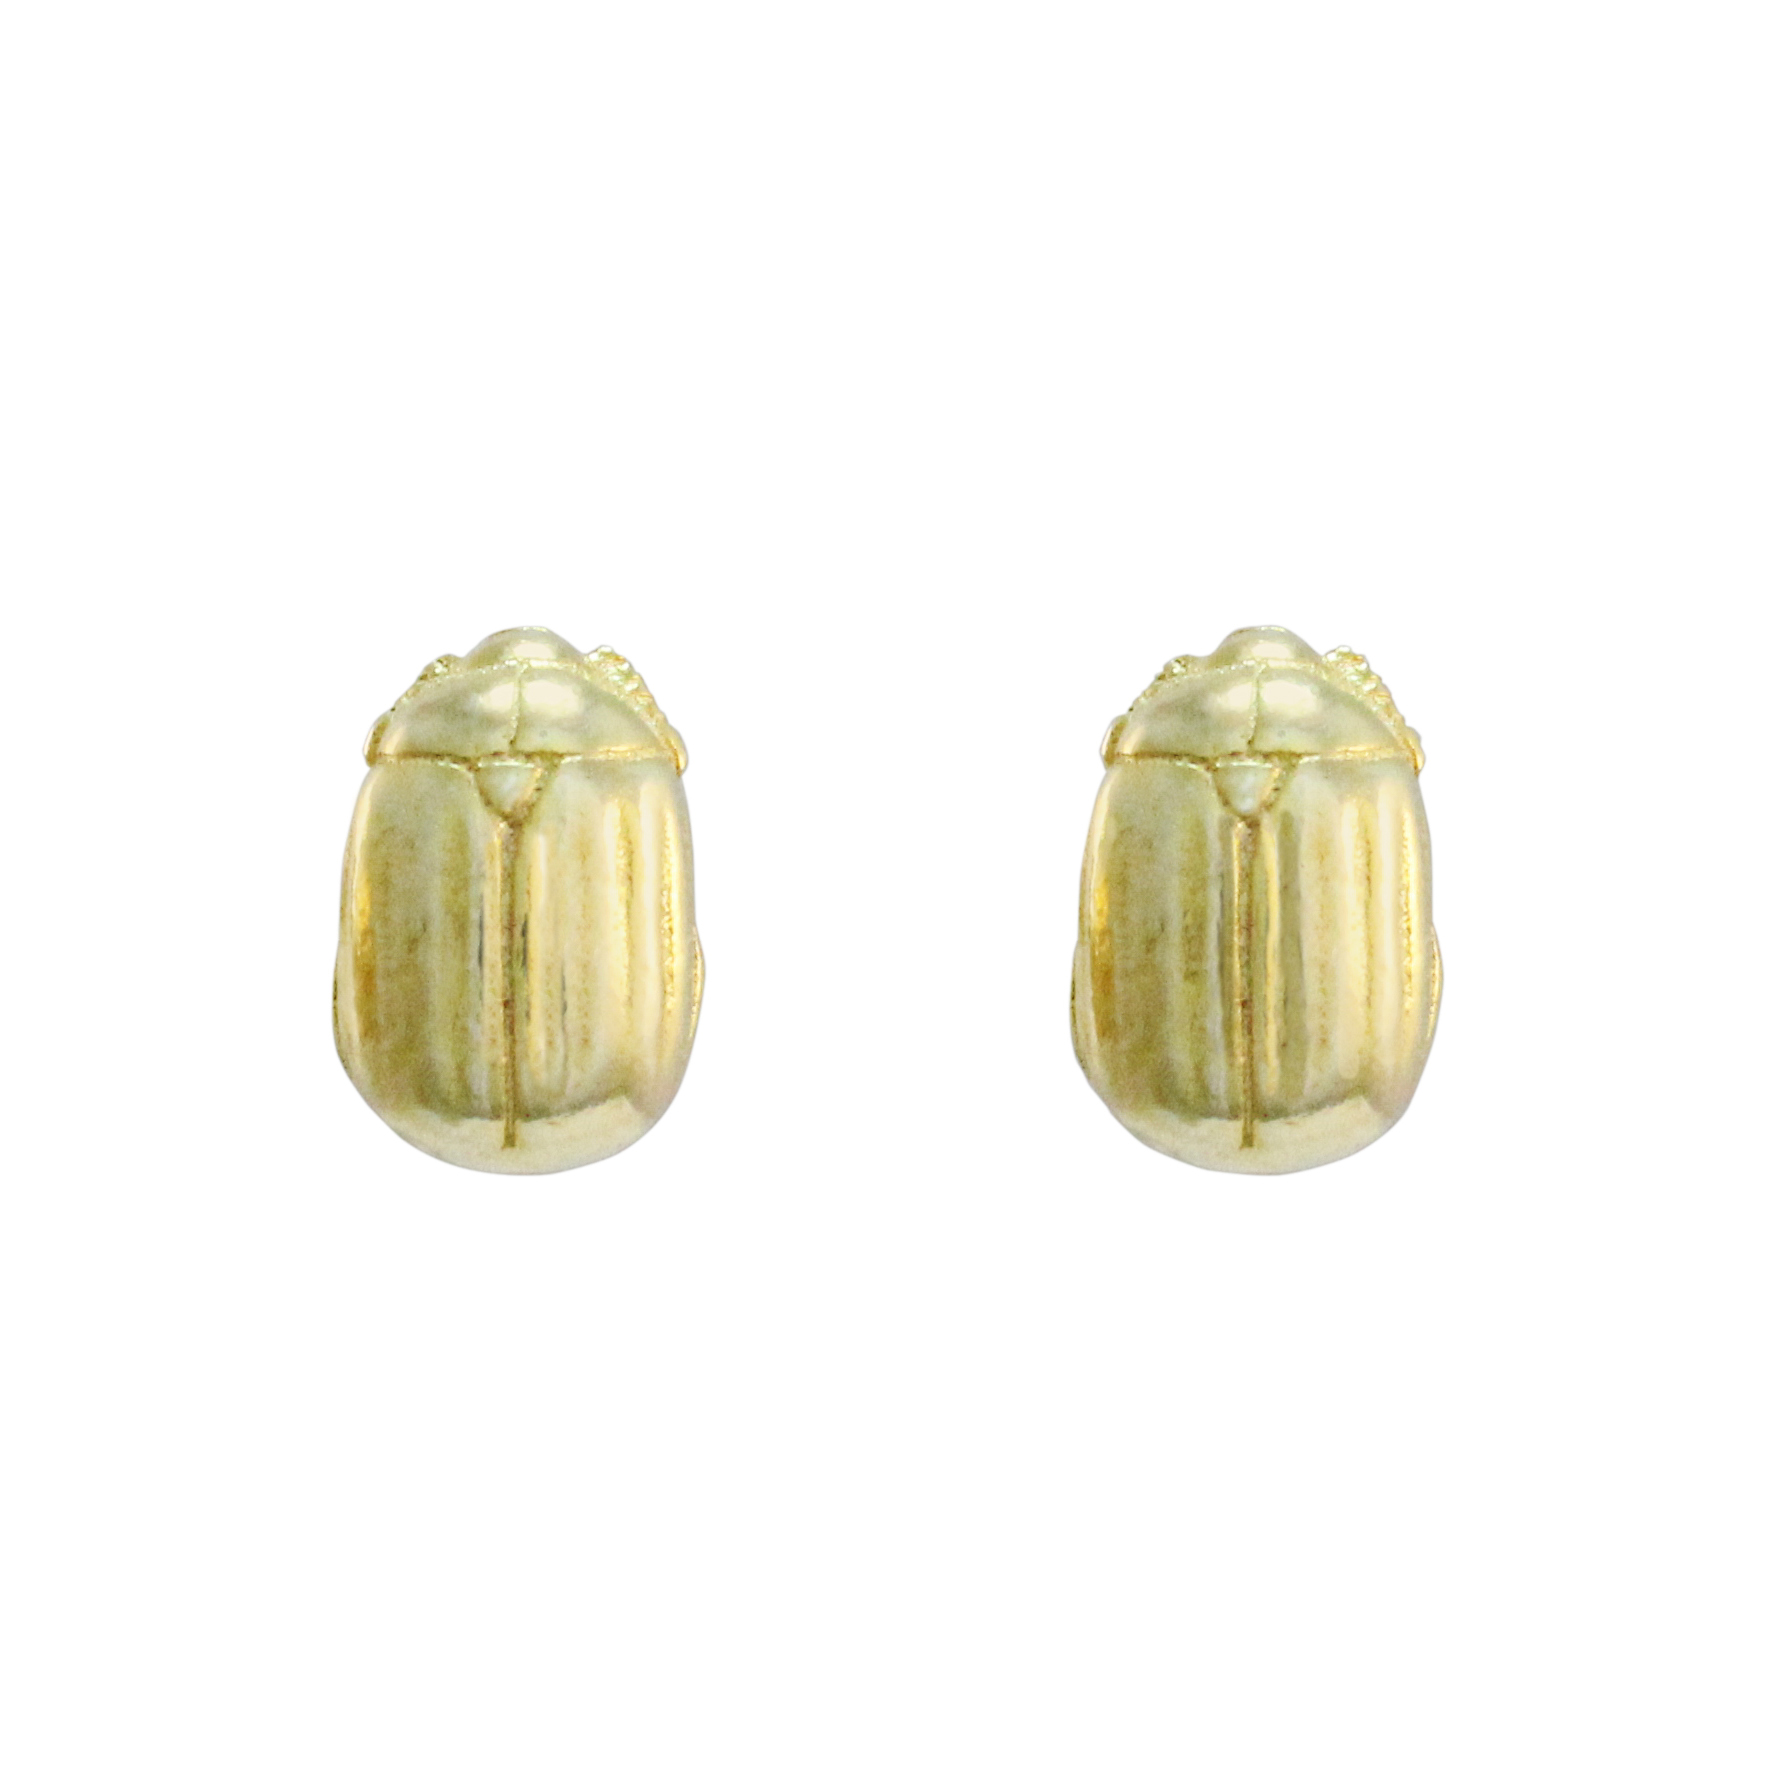 9ct Yellow Gold Beetle Studs